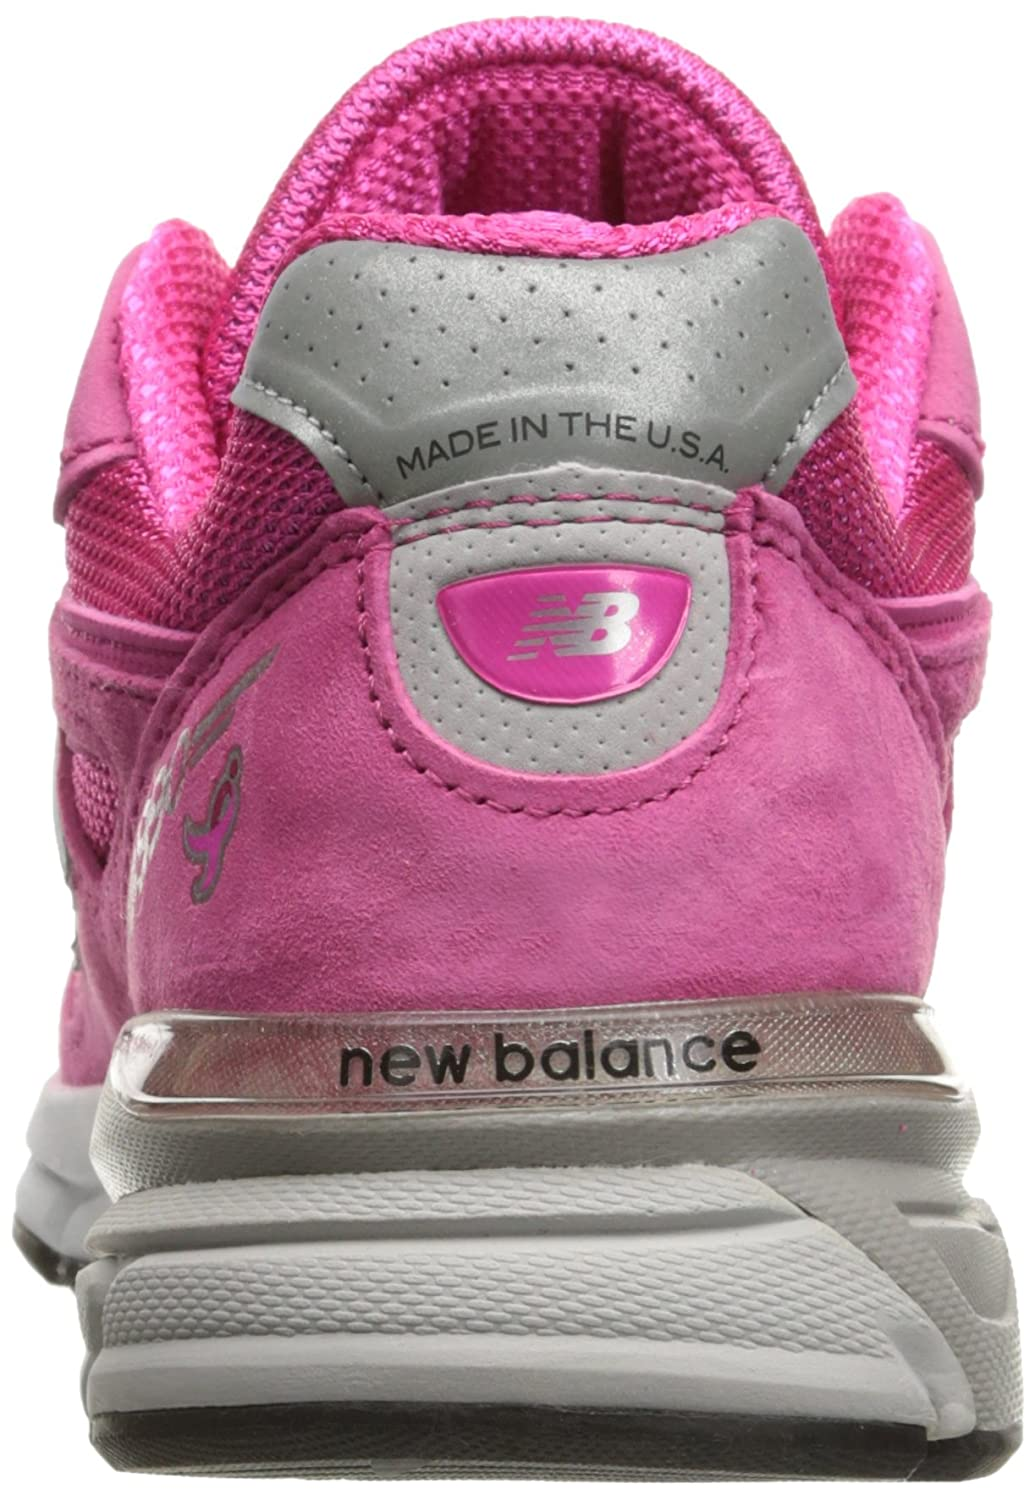 New-Balance-990-990v4-Classicc-Retro-Fashion-Sneaker-Made-in-USA thumbnail 73